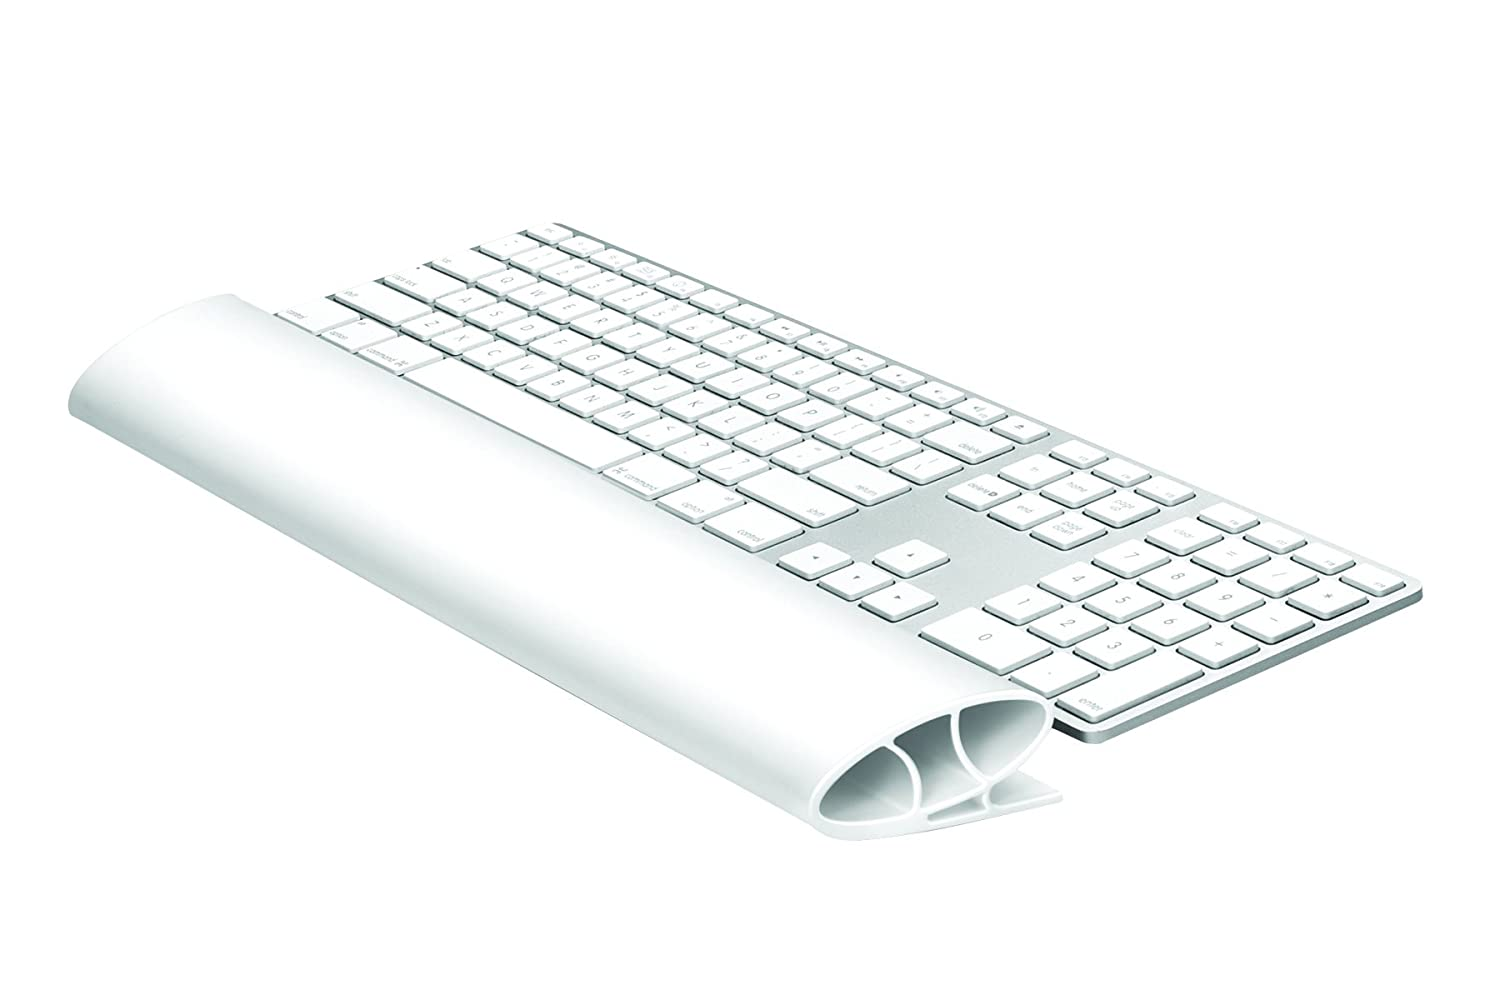 Fellowes I-Spire Series - Reposamuñecas para teclado, flexible, color blanco 9394201